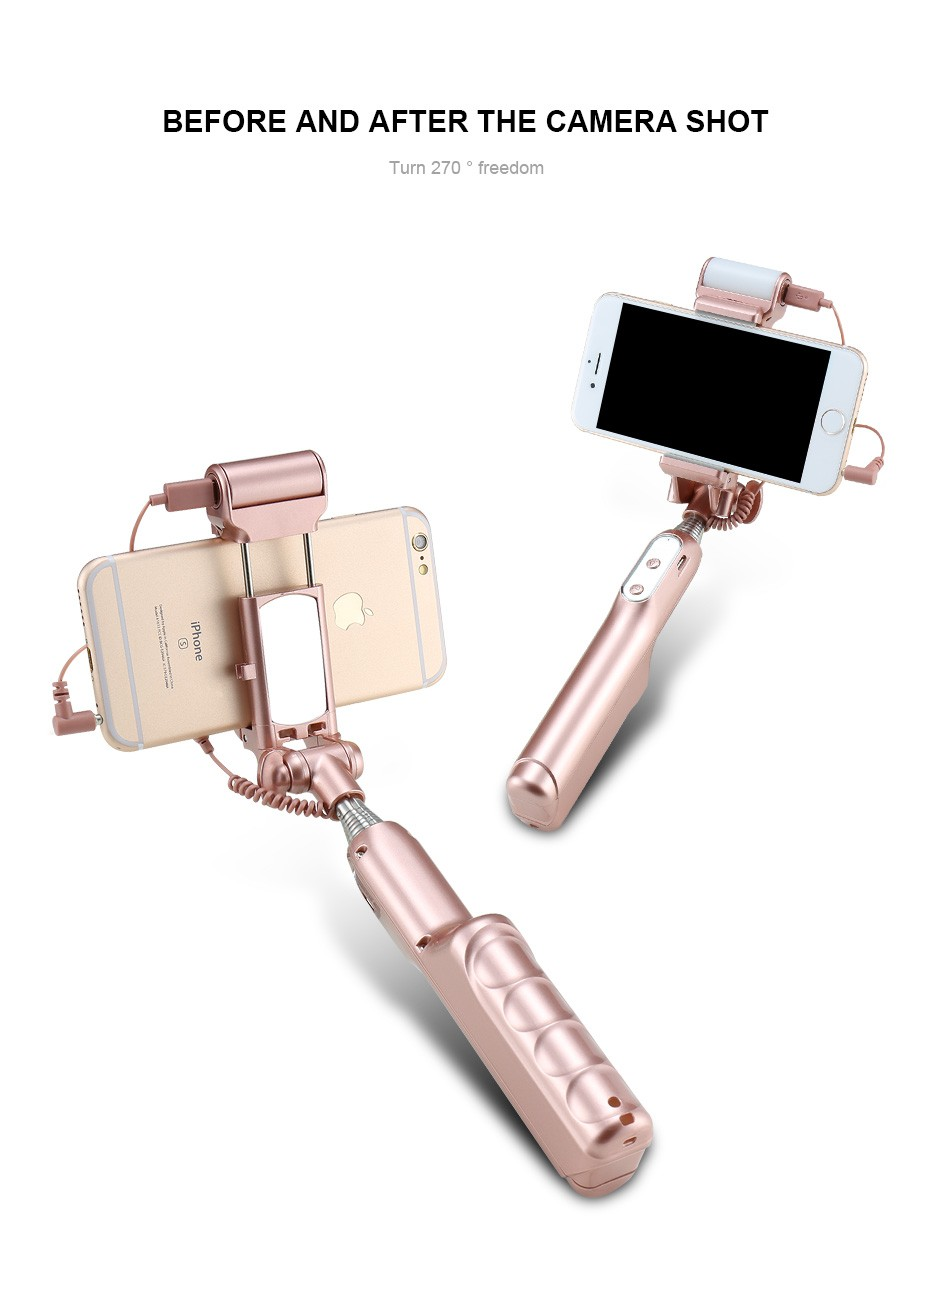 Universal Phone Camera Selfie Stick Self-timer Monopod For iPhone Samsung Huawei IOS Android Wired Handheld Extendable Kickstand (10)